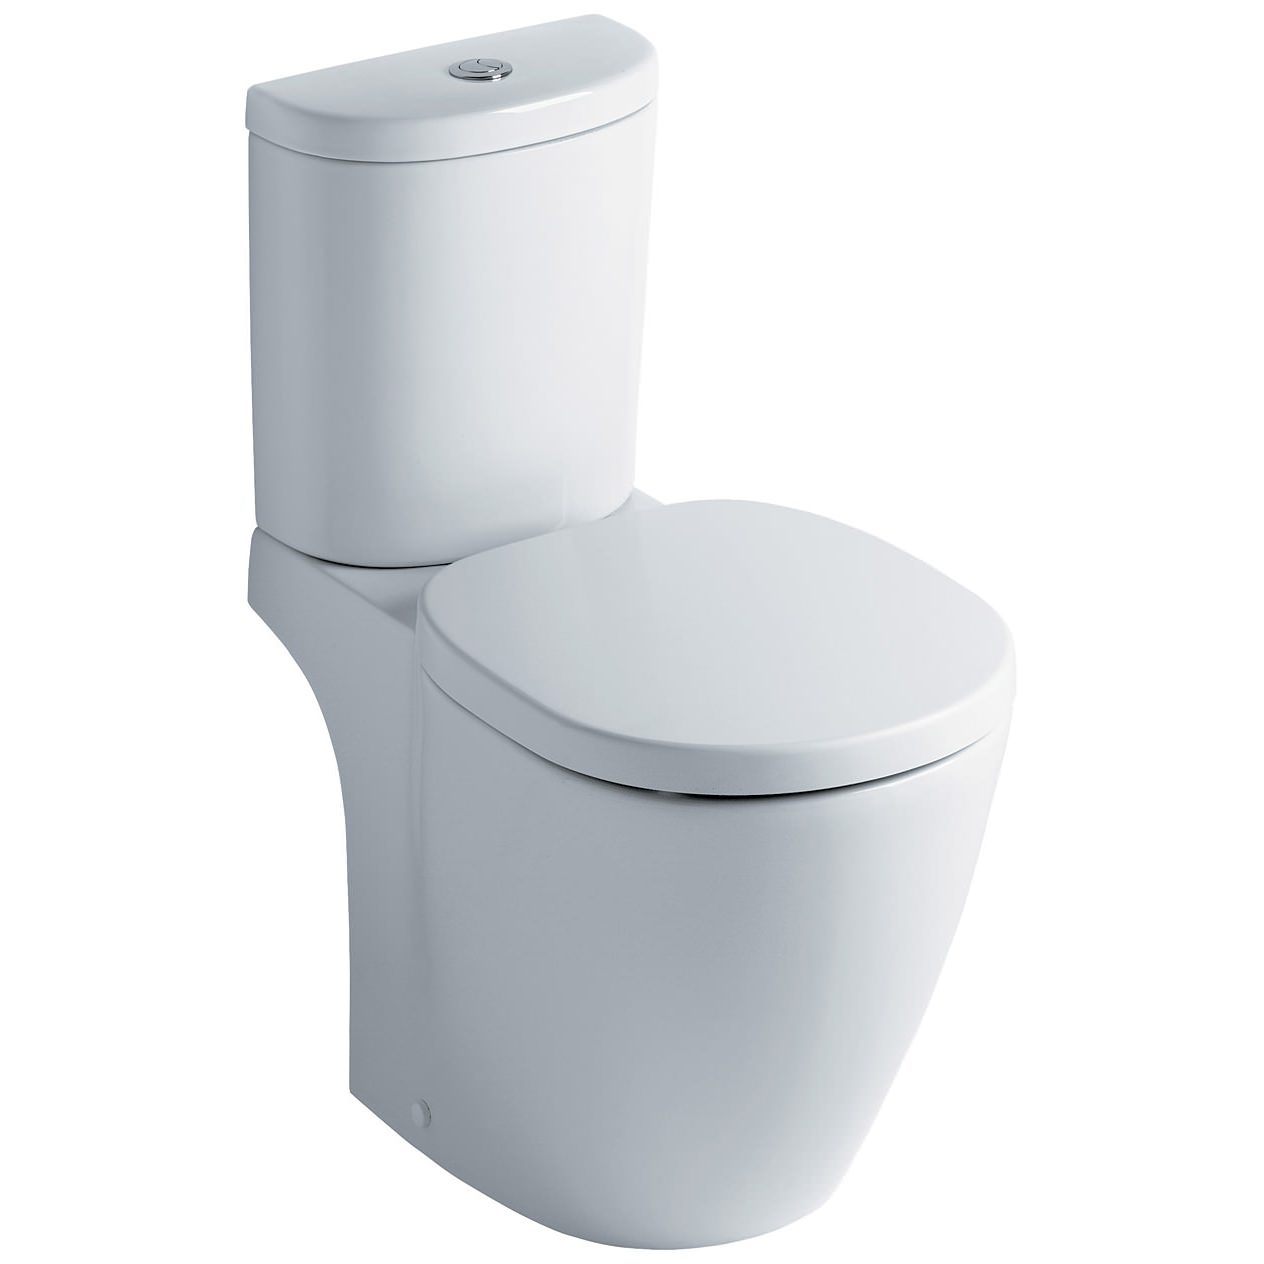 Ideal Standard Toilet.Ideal Standard Concept Close Coupled Wc Pan 665mm